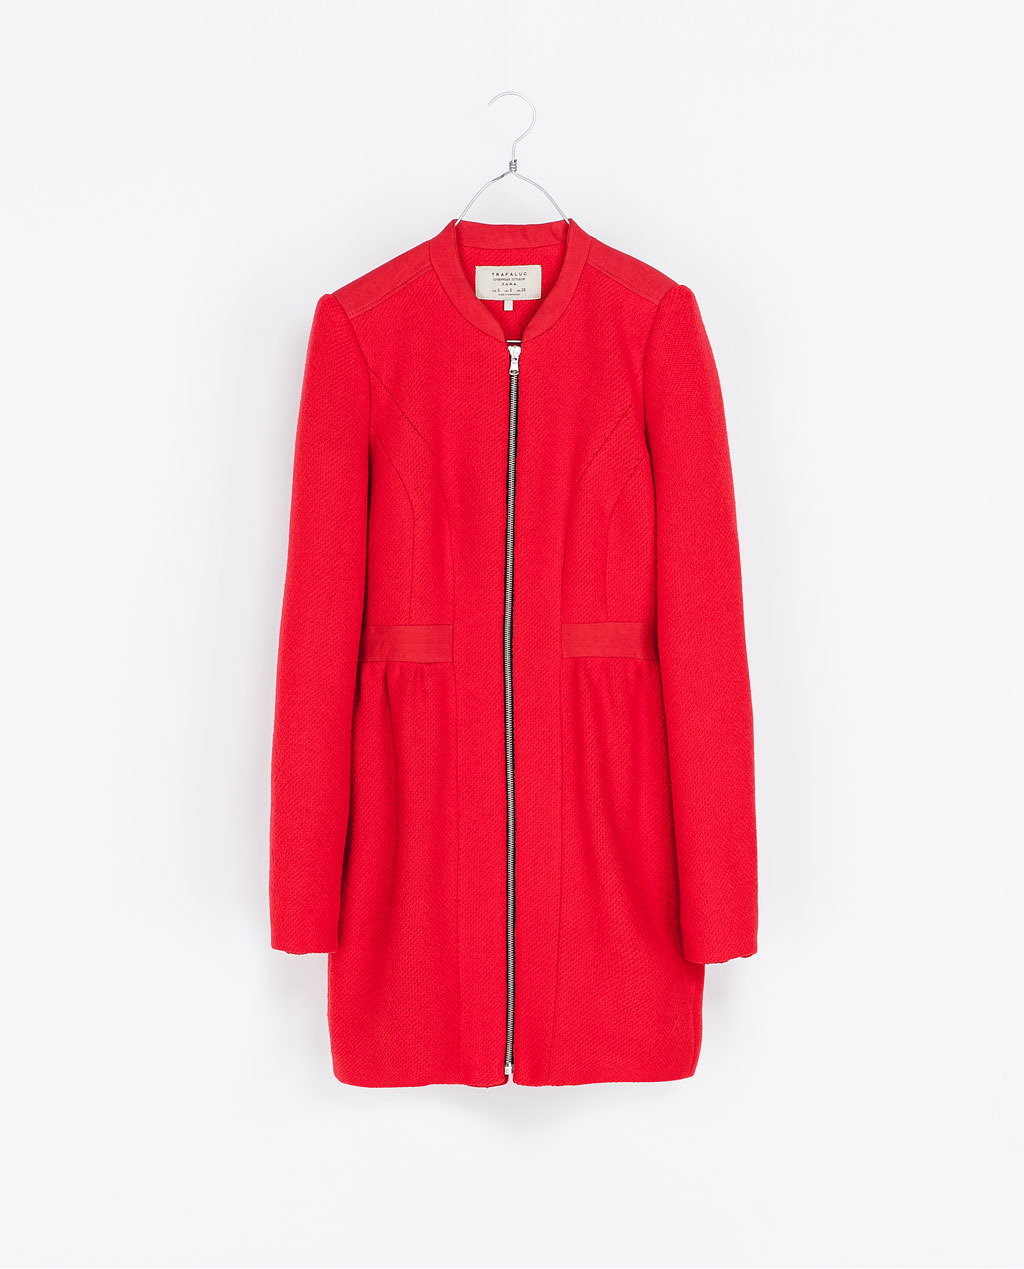 Wool Coat - pattern: plain; collar: round collar/collarless; style: single breasted; length: mid thigh; predominant colour: true red; occasions: casual; fit: tailored/fitted; fibres: cotton - mix; waist detail: belted waist/tie at waist/drawstring; sleeve length: long sleeve; sleeve style: standard; collar break: high; pattern type: fabric; texture group: woven bulky/heavy; season: a/w 2013